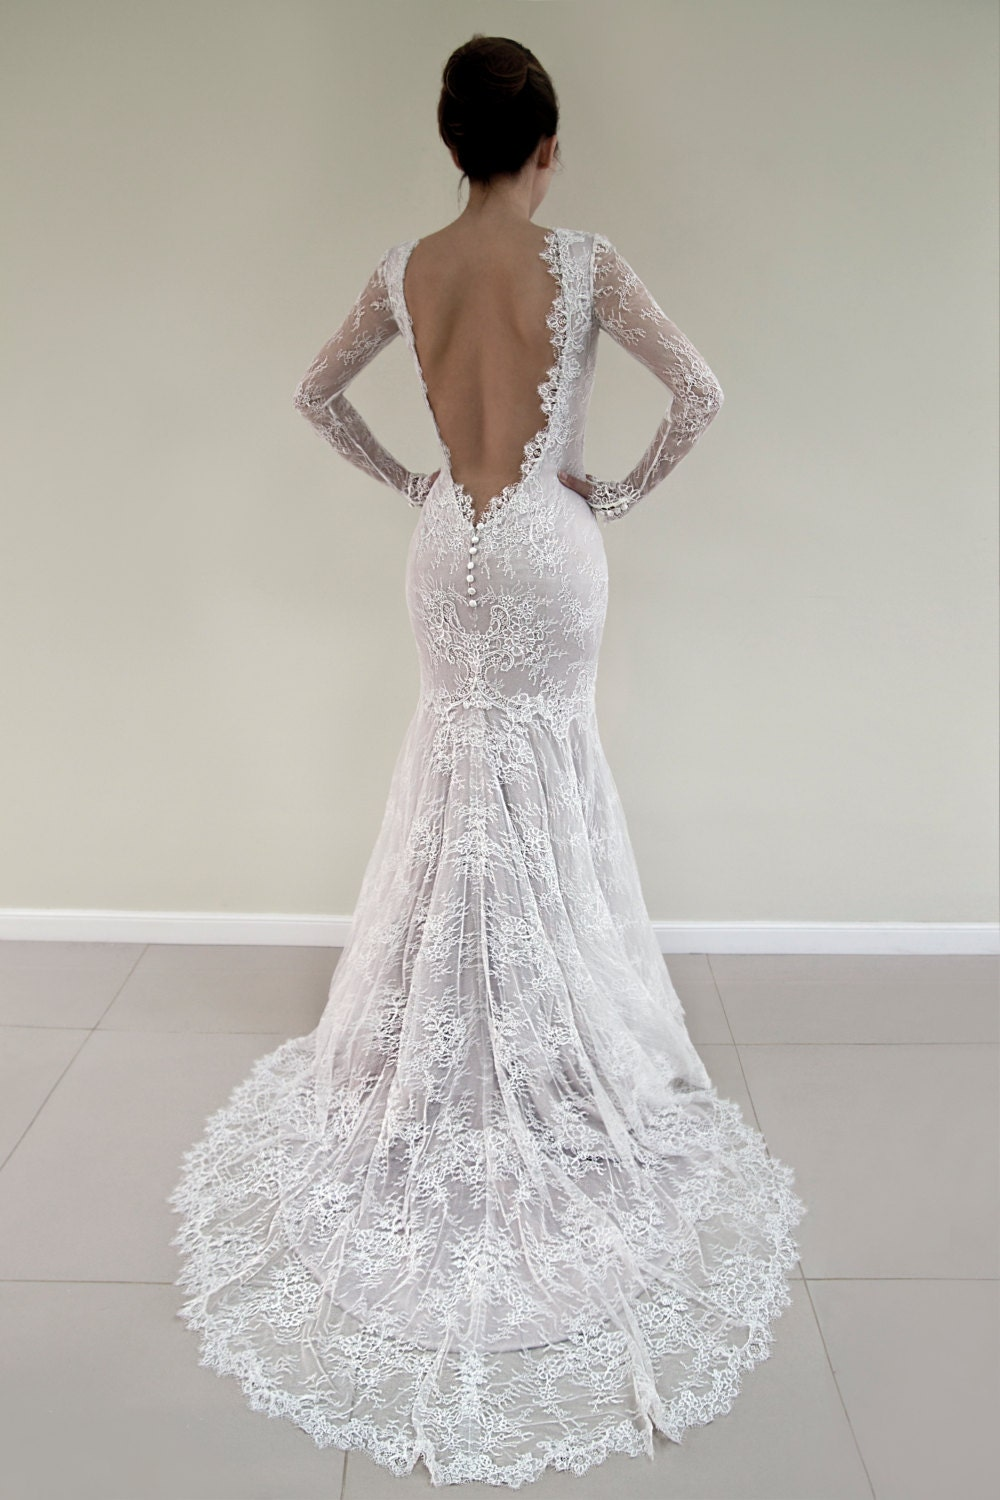 Open back lace wedding dress long sleeved bridal gown for Champagne colored wedding dresses with sleeves